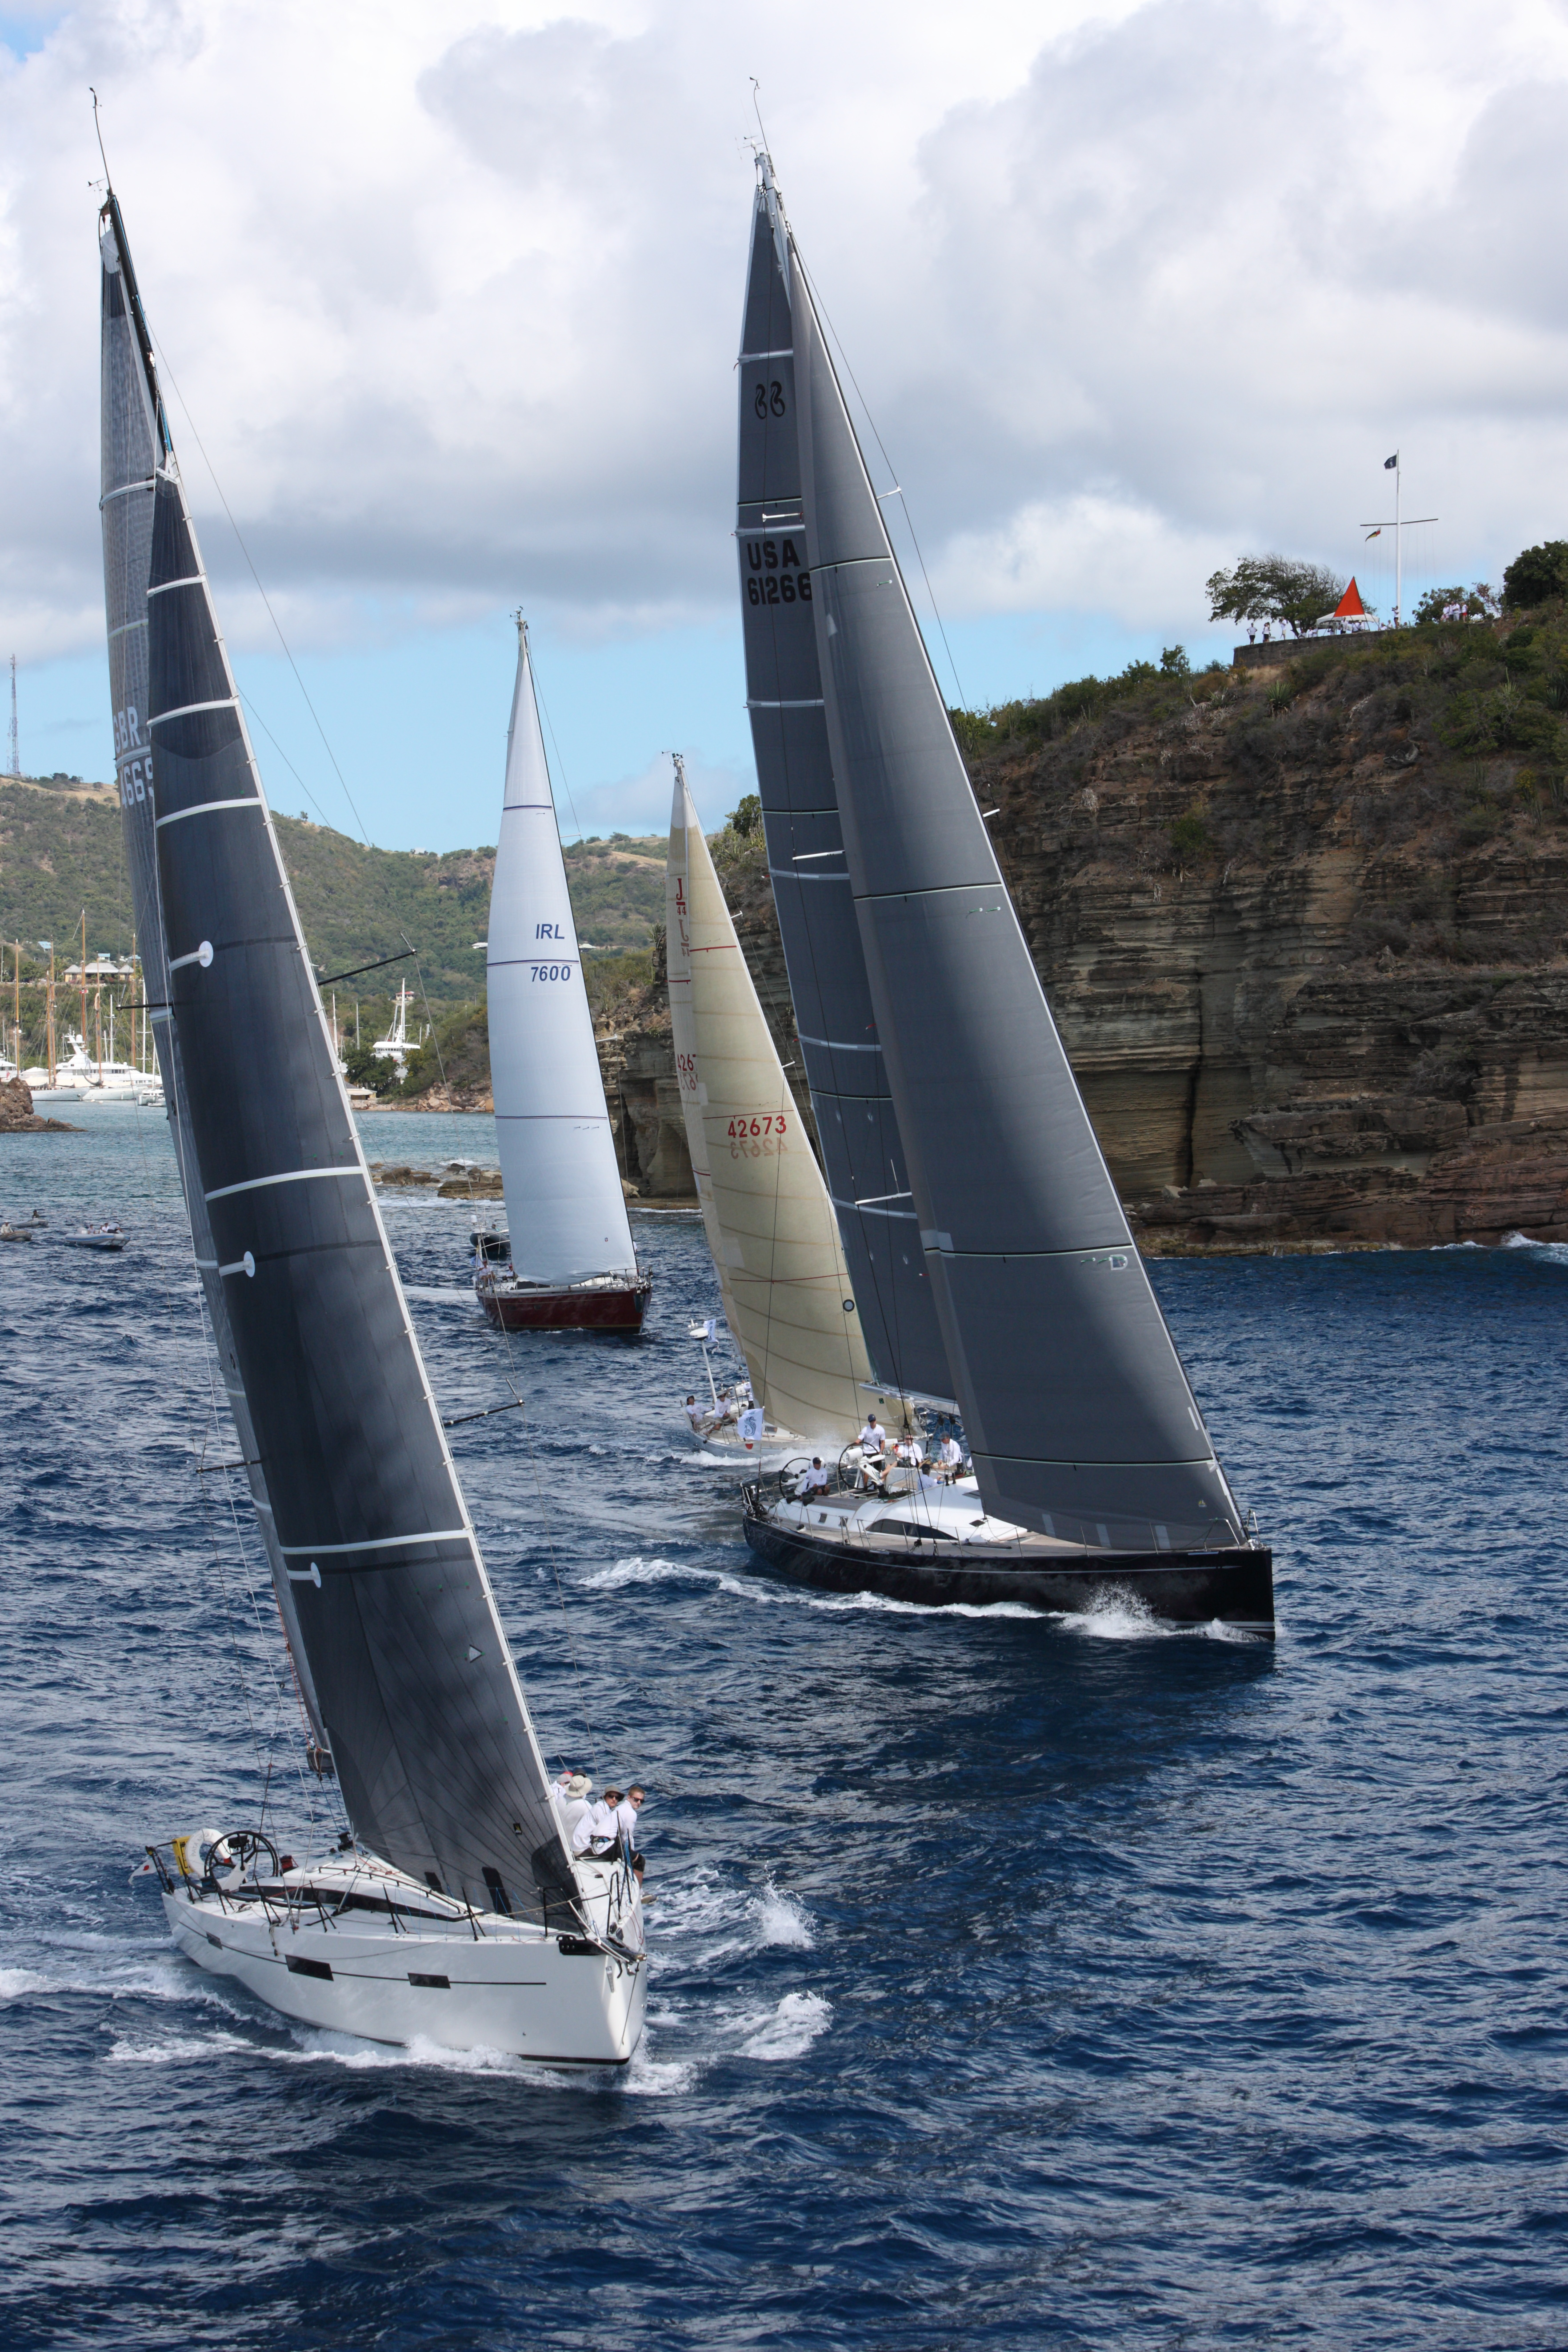 Picture of Pata Negra Lombard 46 racing yacht at the start of the Carribean 600 race yacht racing yacht charter racing charter